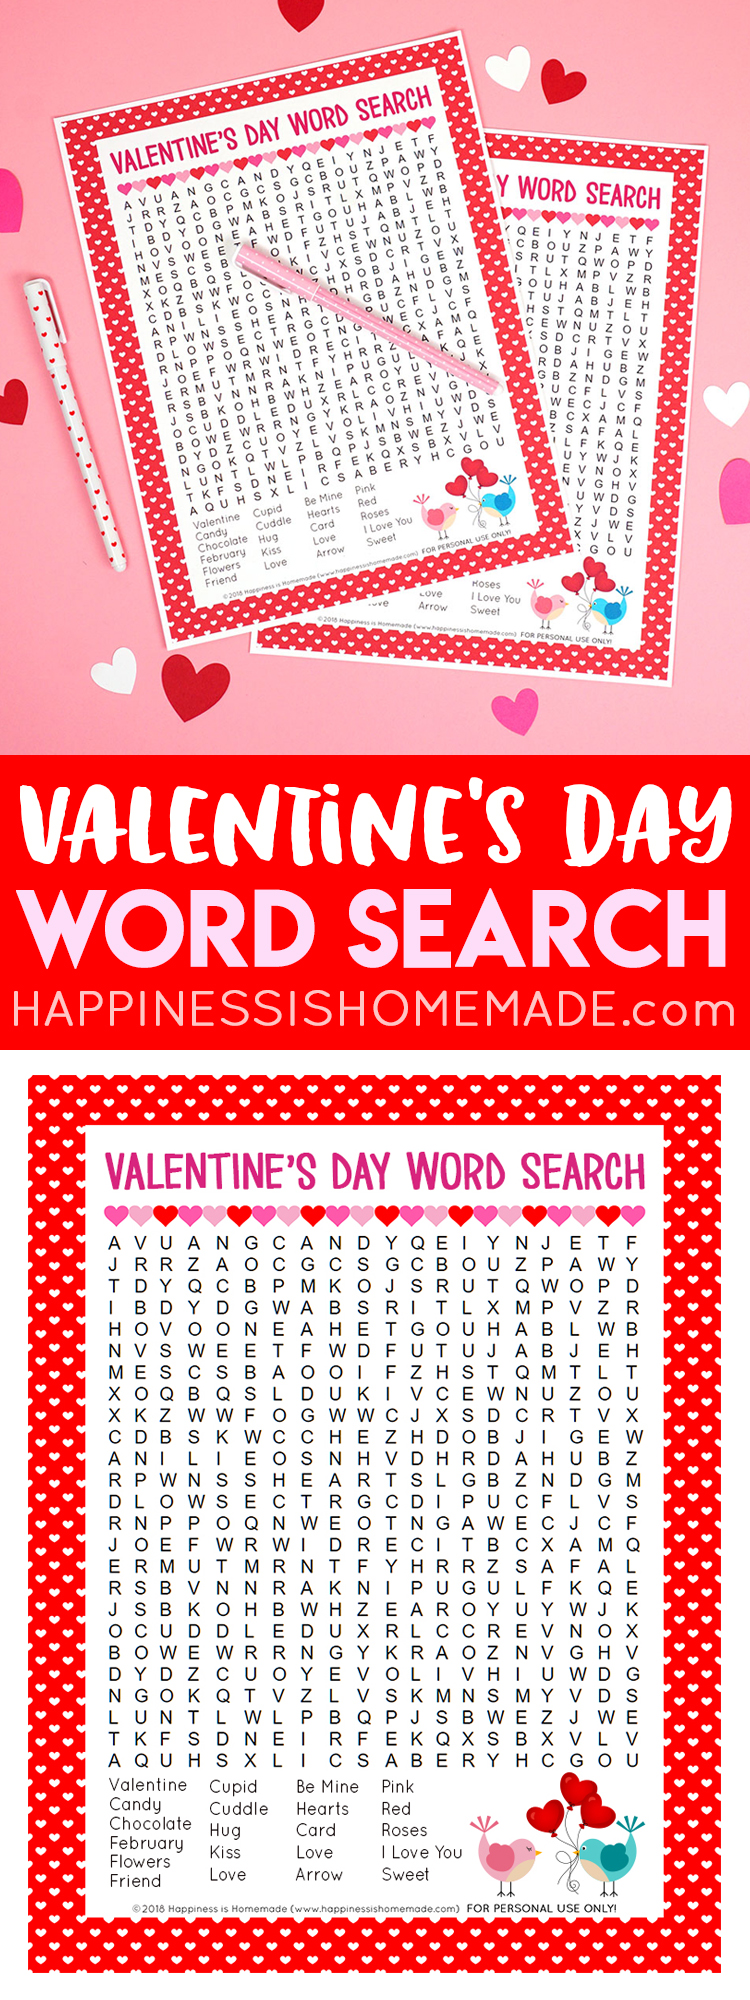 This sweet Valentine's Day Word Search printable puzzle is a ton of fun for kids of all ages! Perfect for teachers, families, classroom parents, Scout leaders, and more! Kids and adults alike will love this printable Valentine's Word Search!